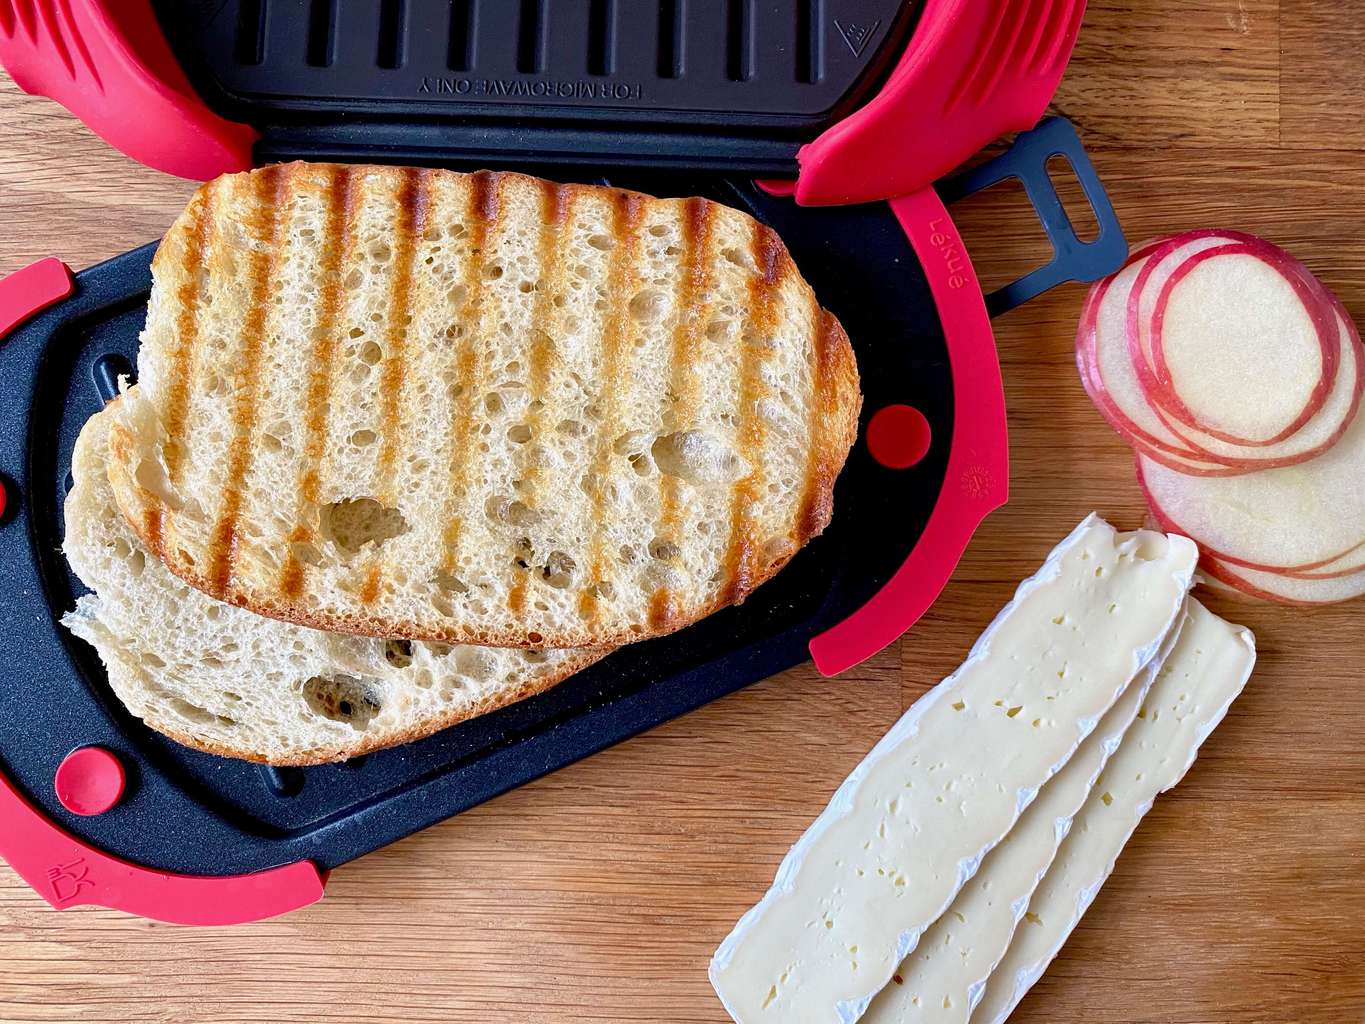 microwave hot grilled sandwiches in a